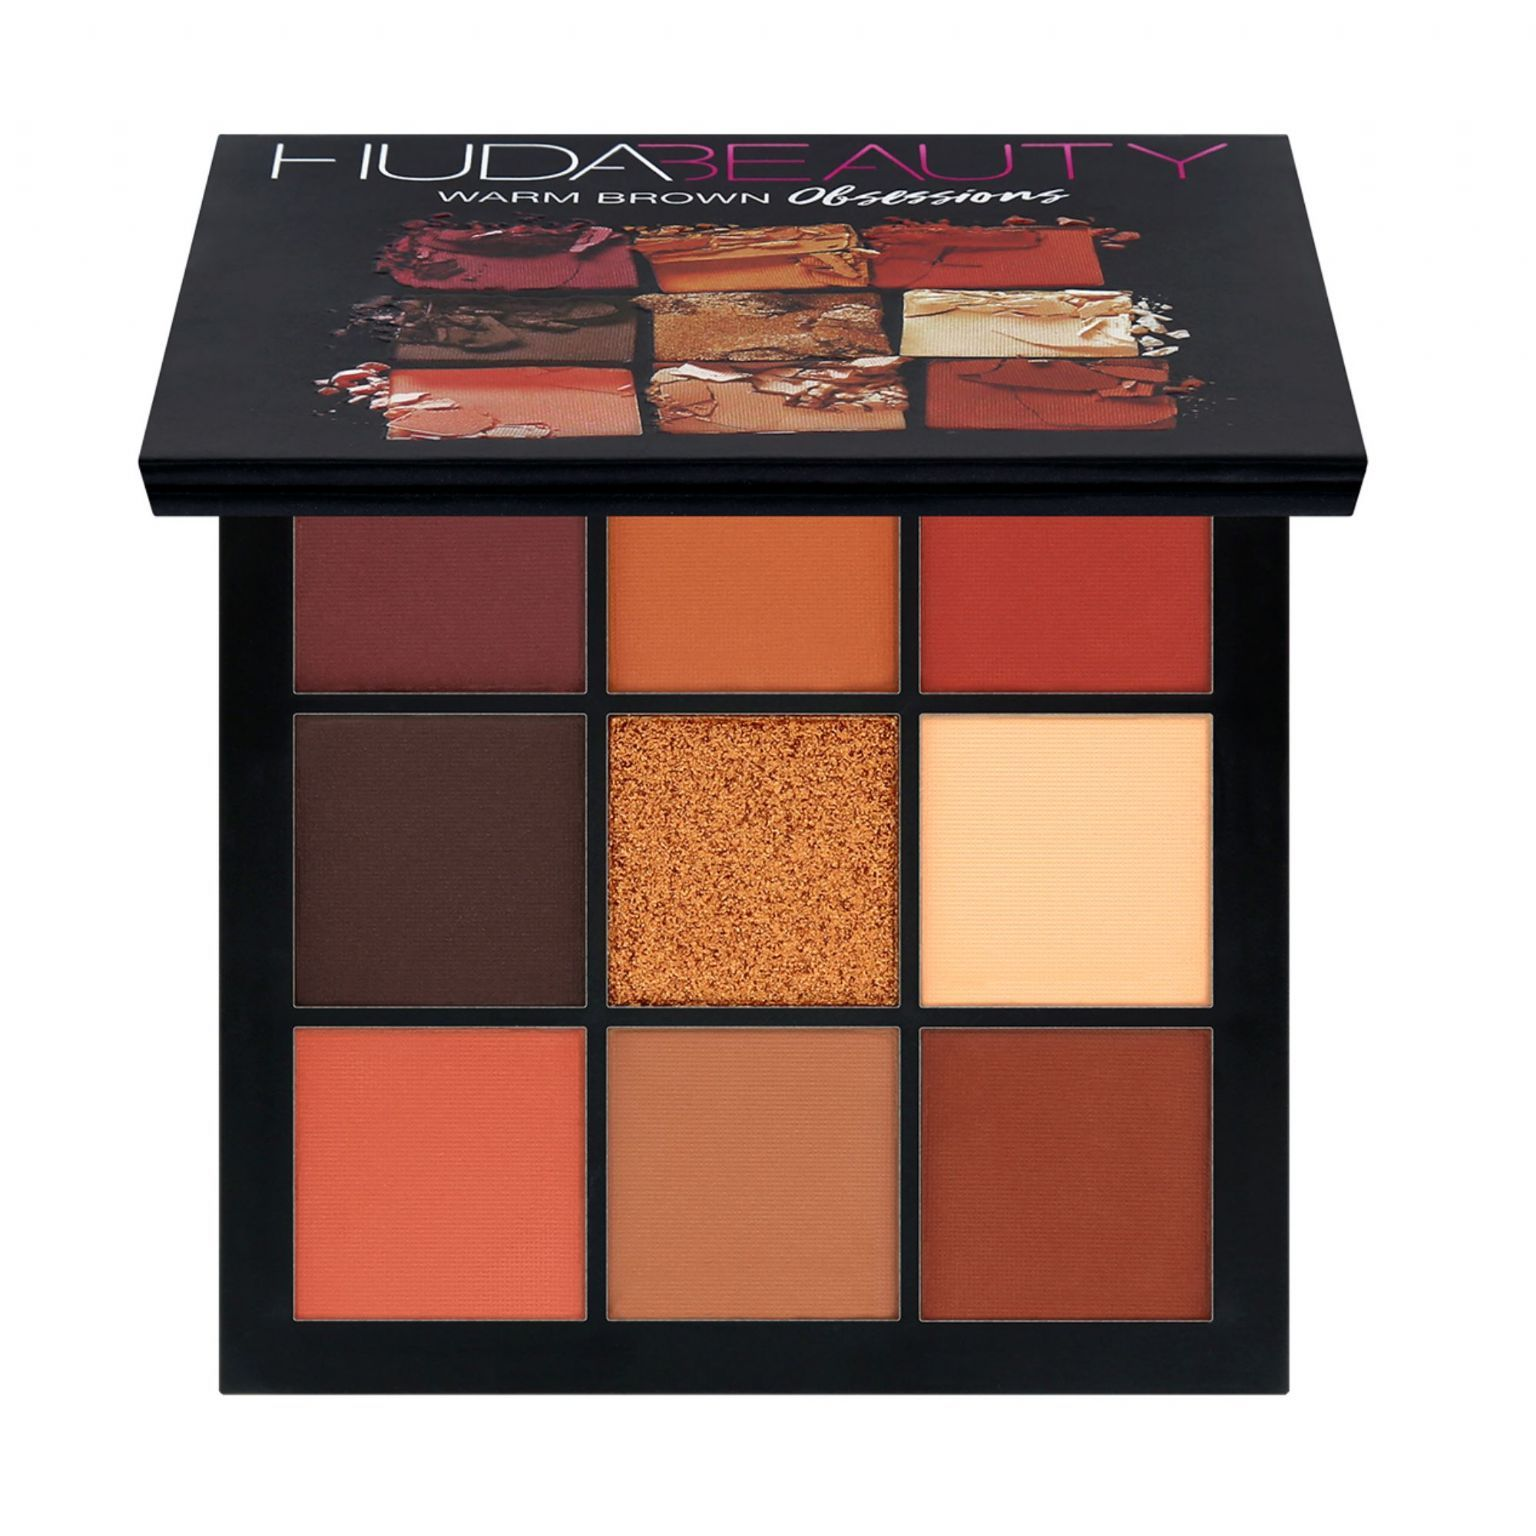 Obsessions Eye Shadow Palette - Warm Browns